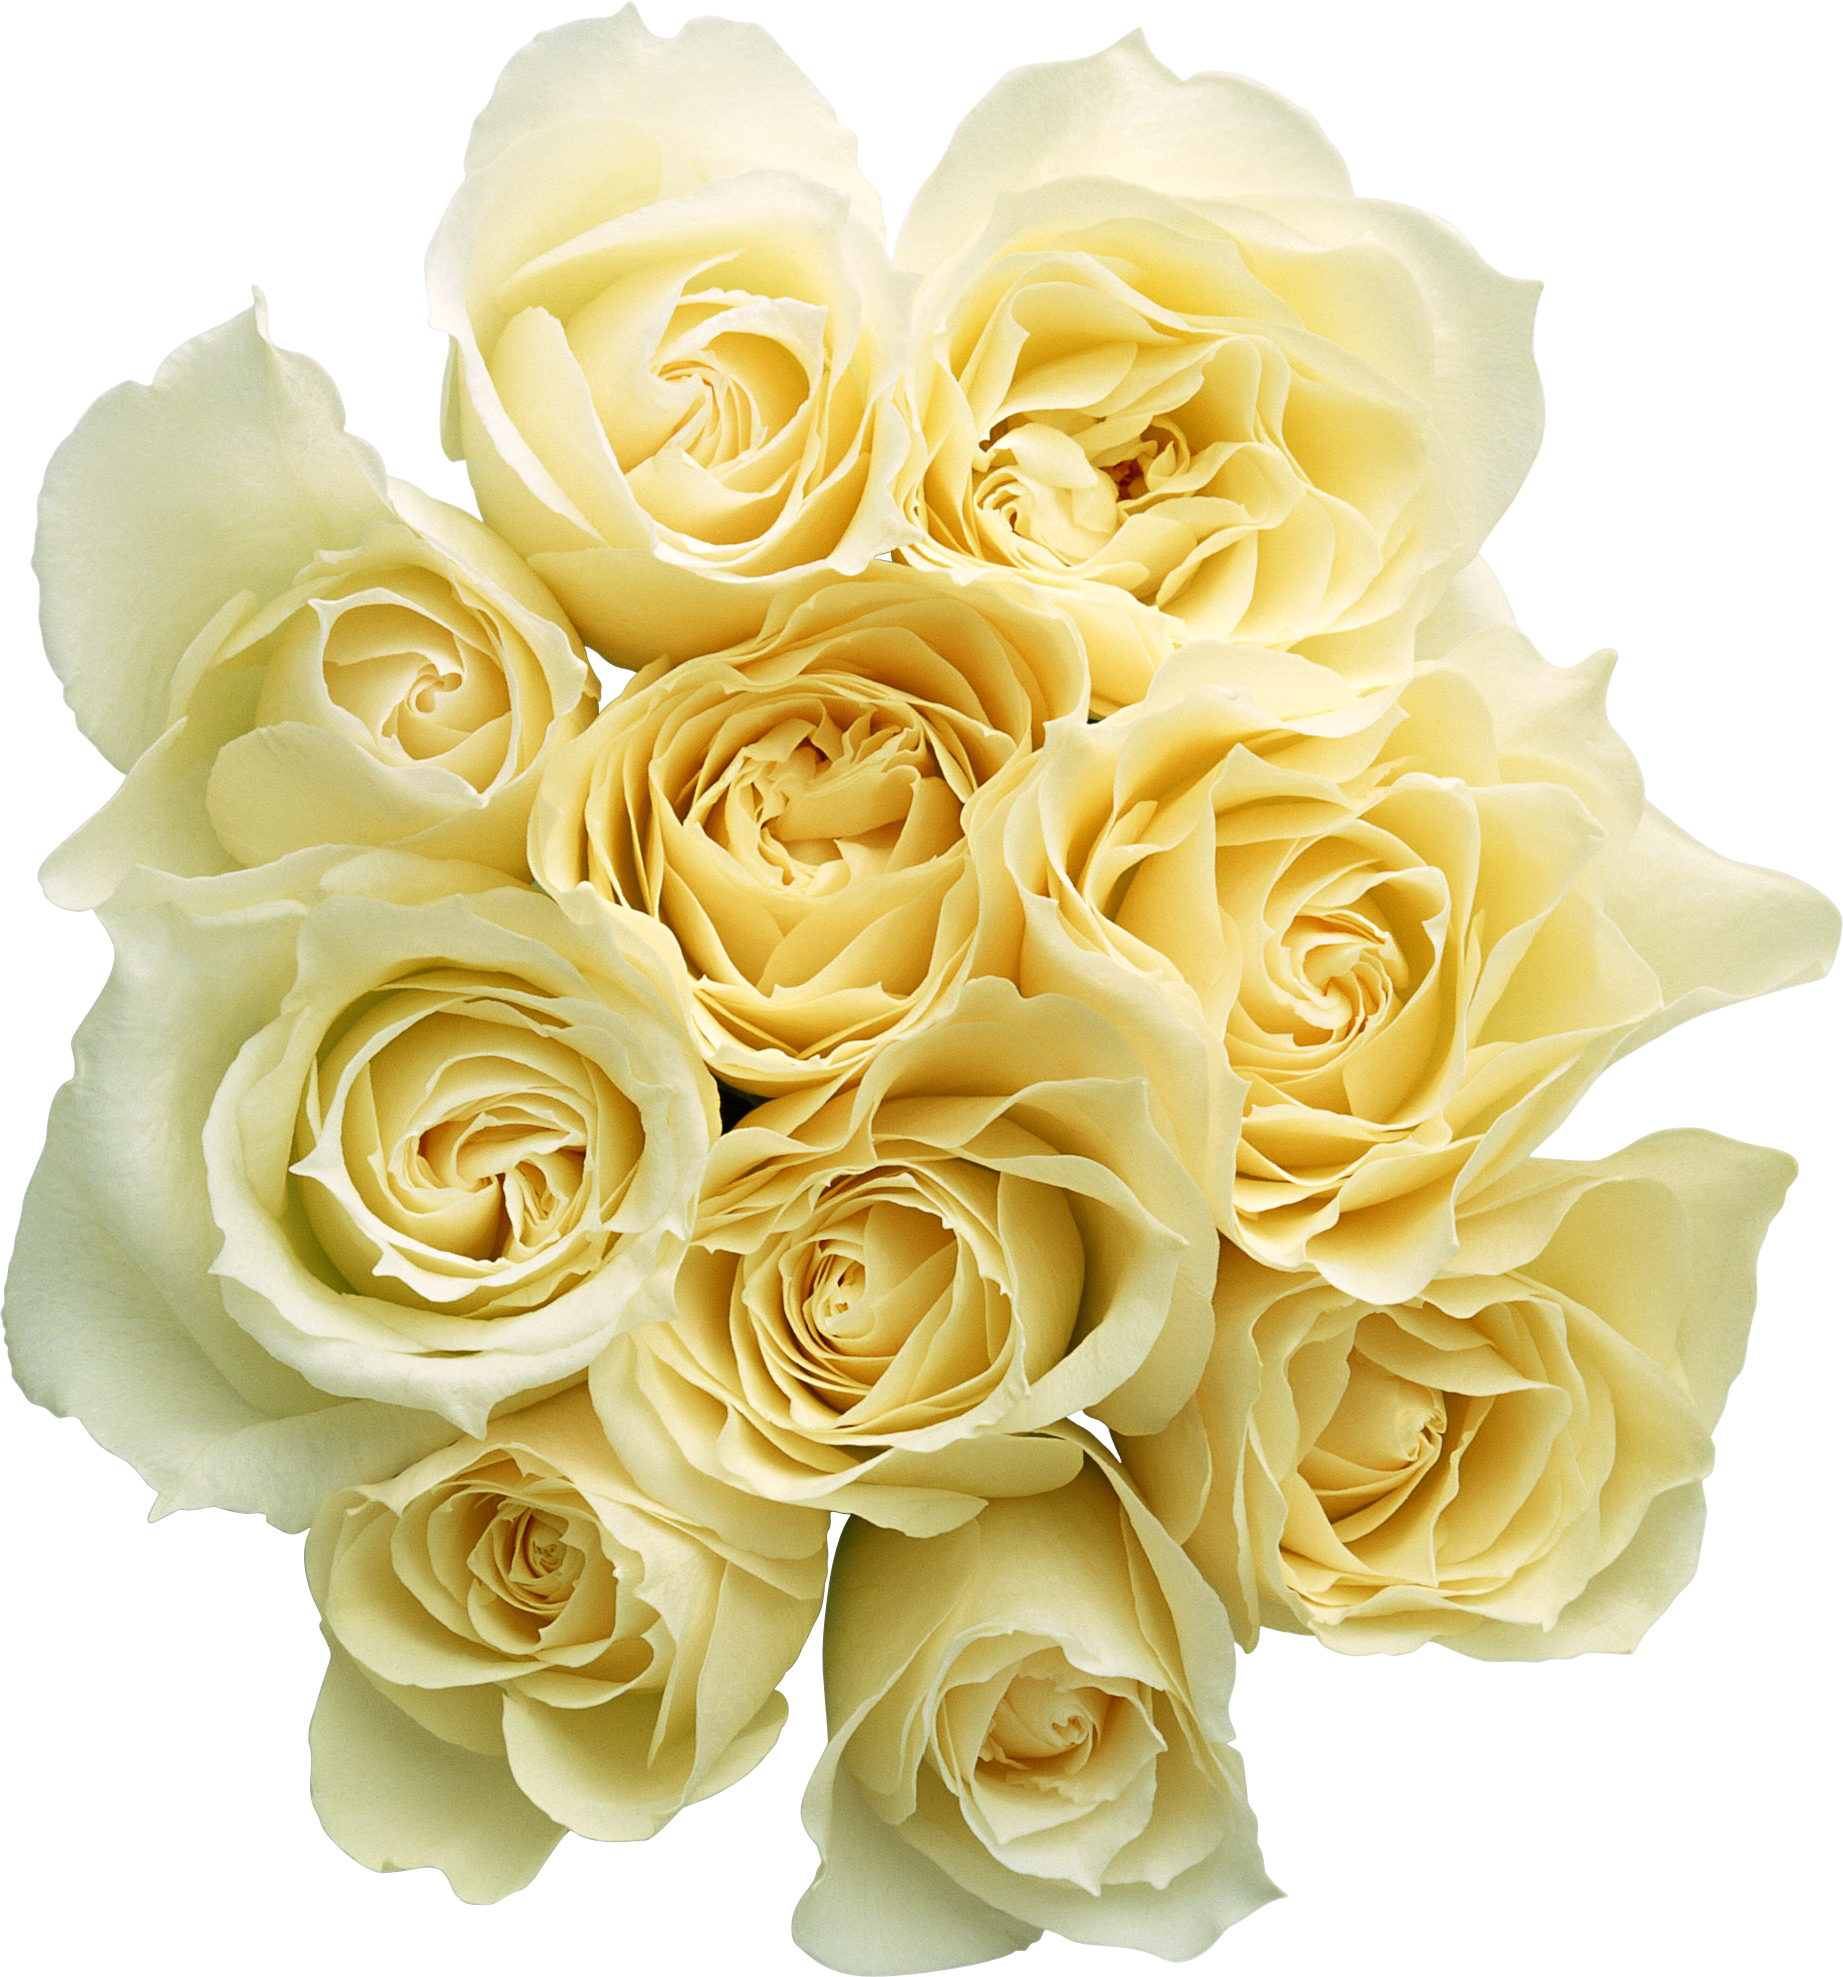 Roses images free download. White flower png